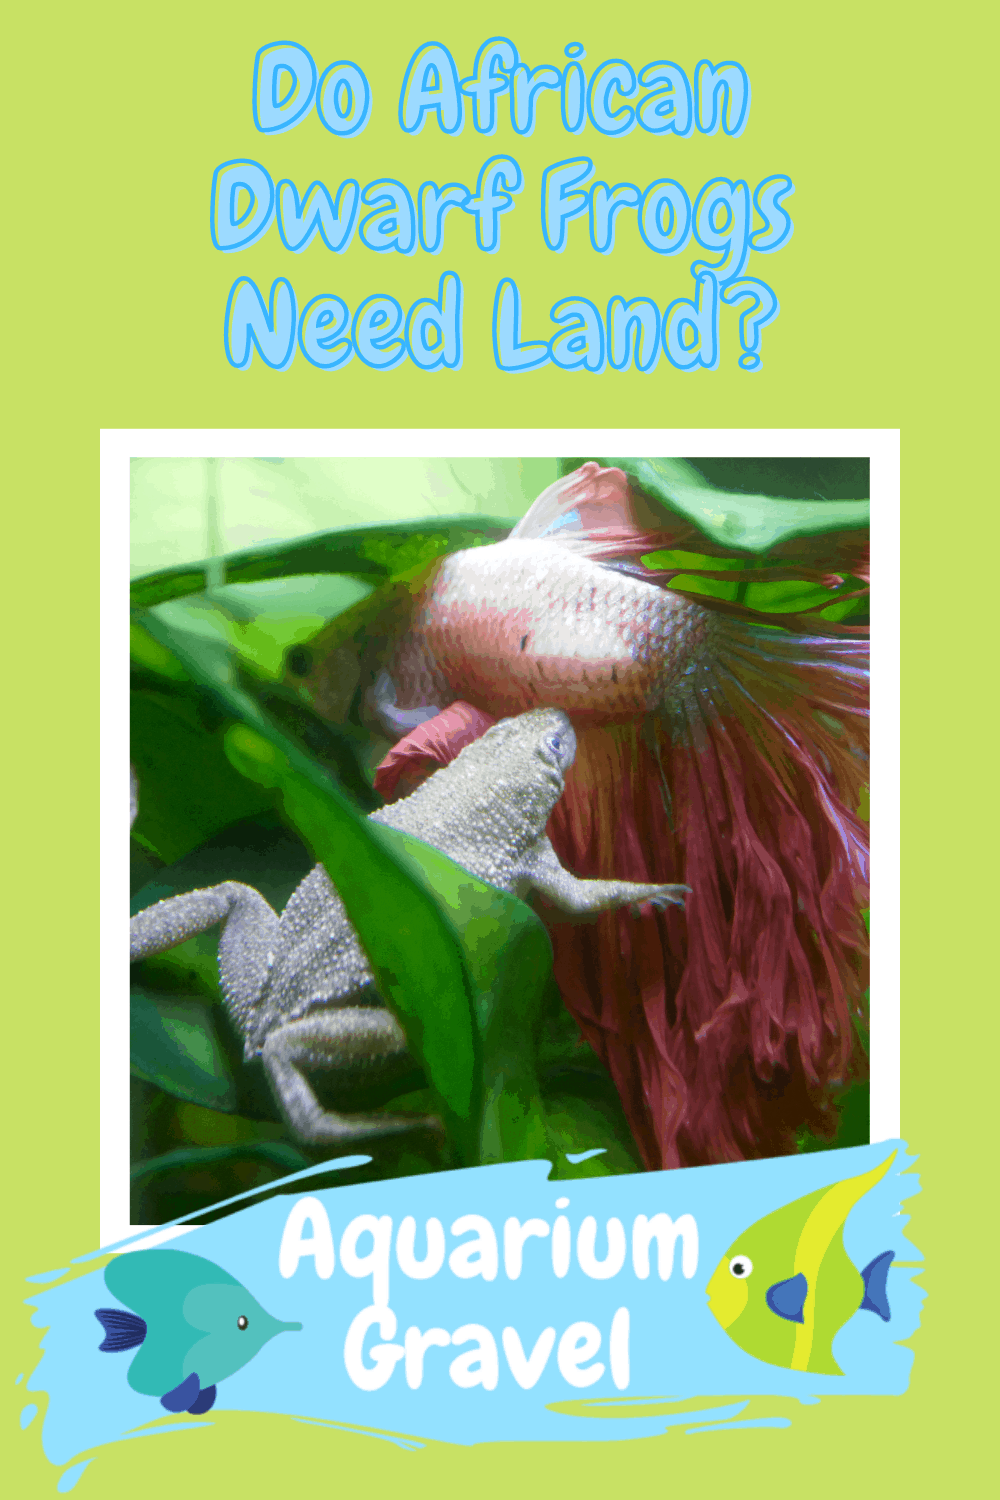 Do African Dwarf Frogs Need Land